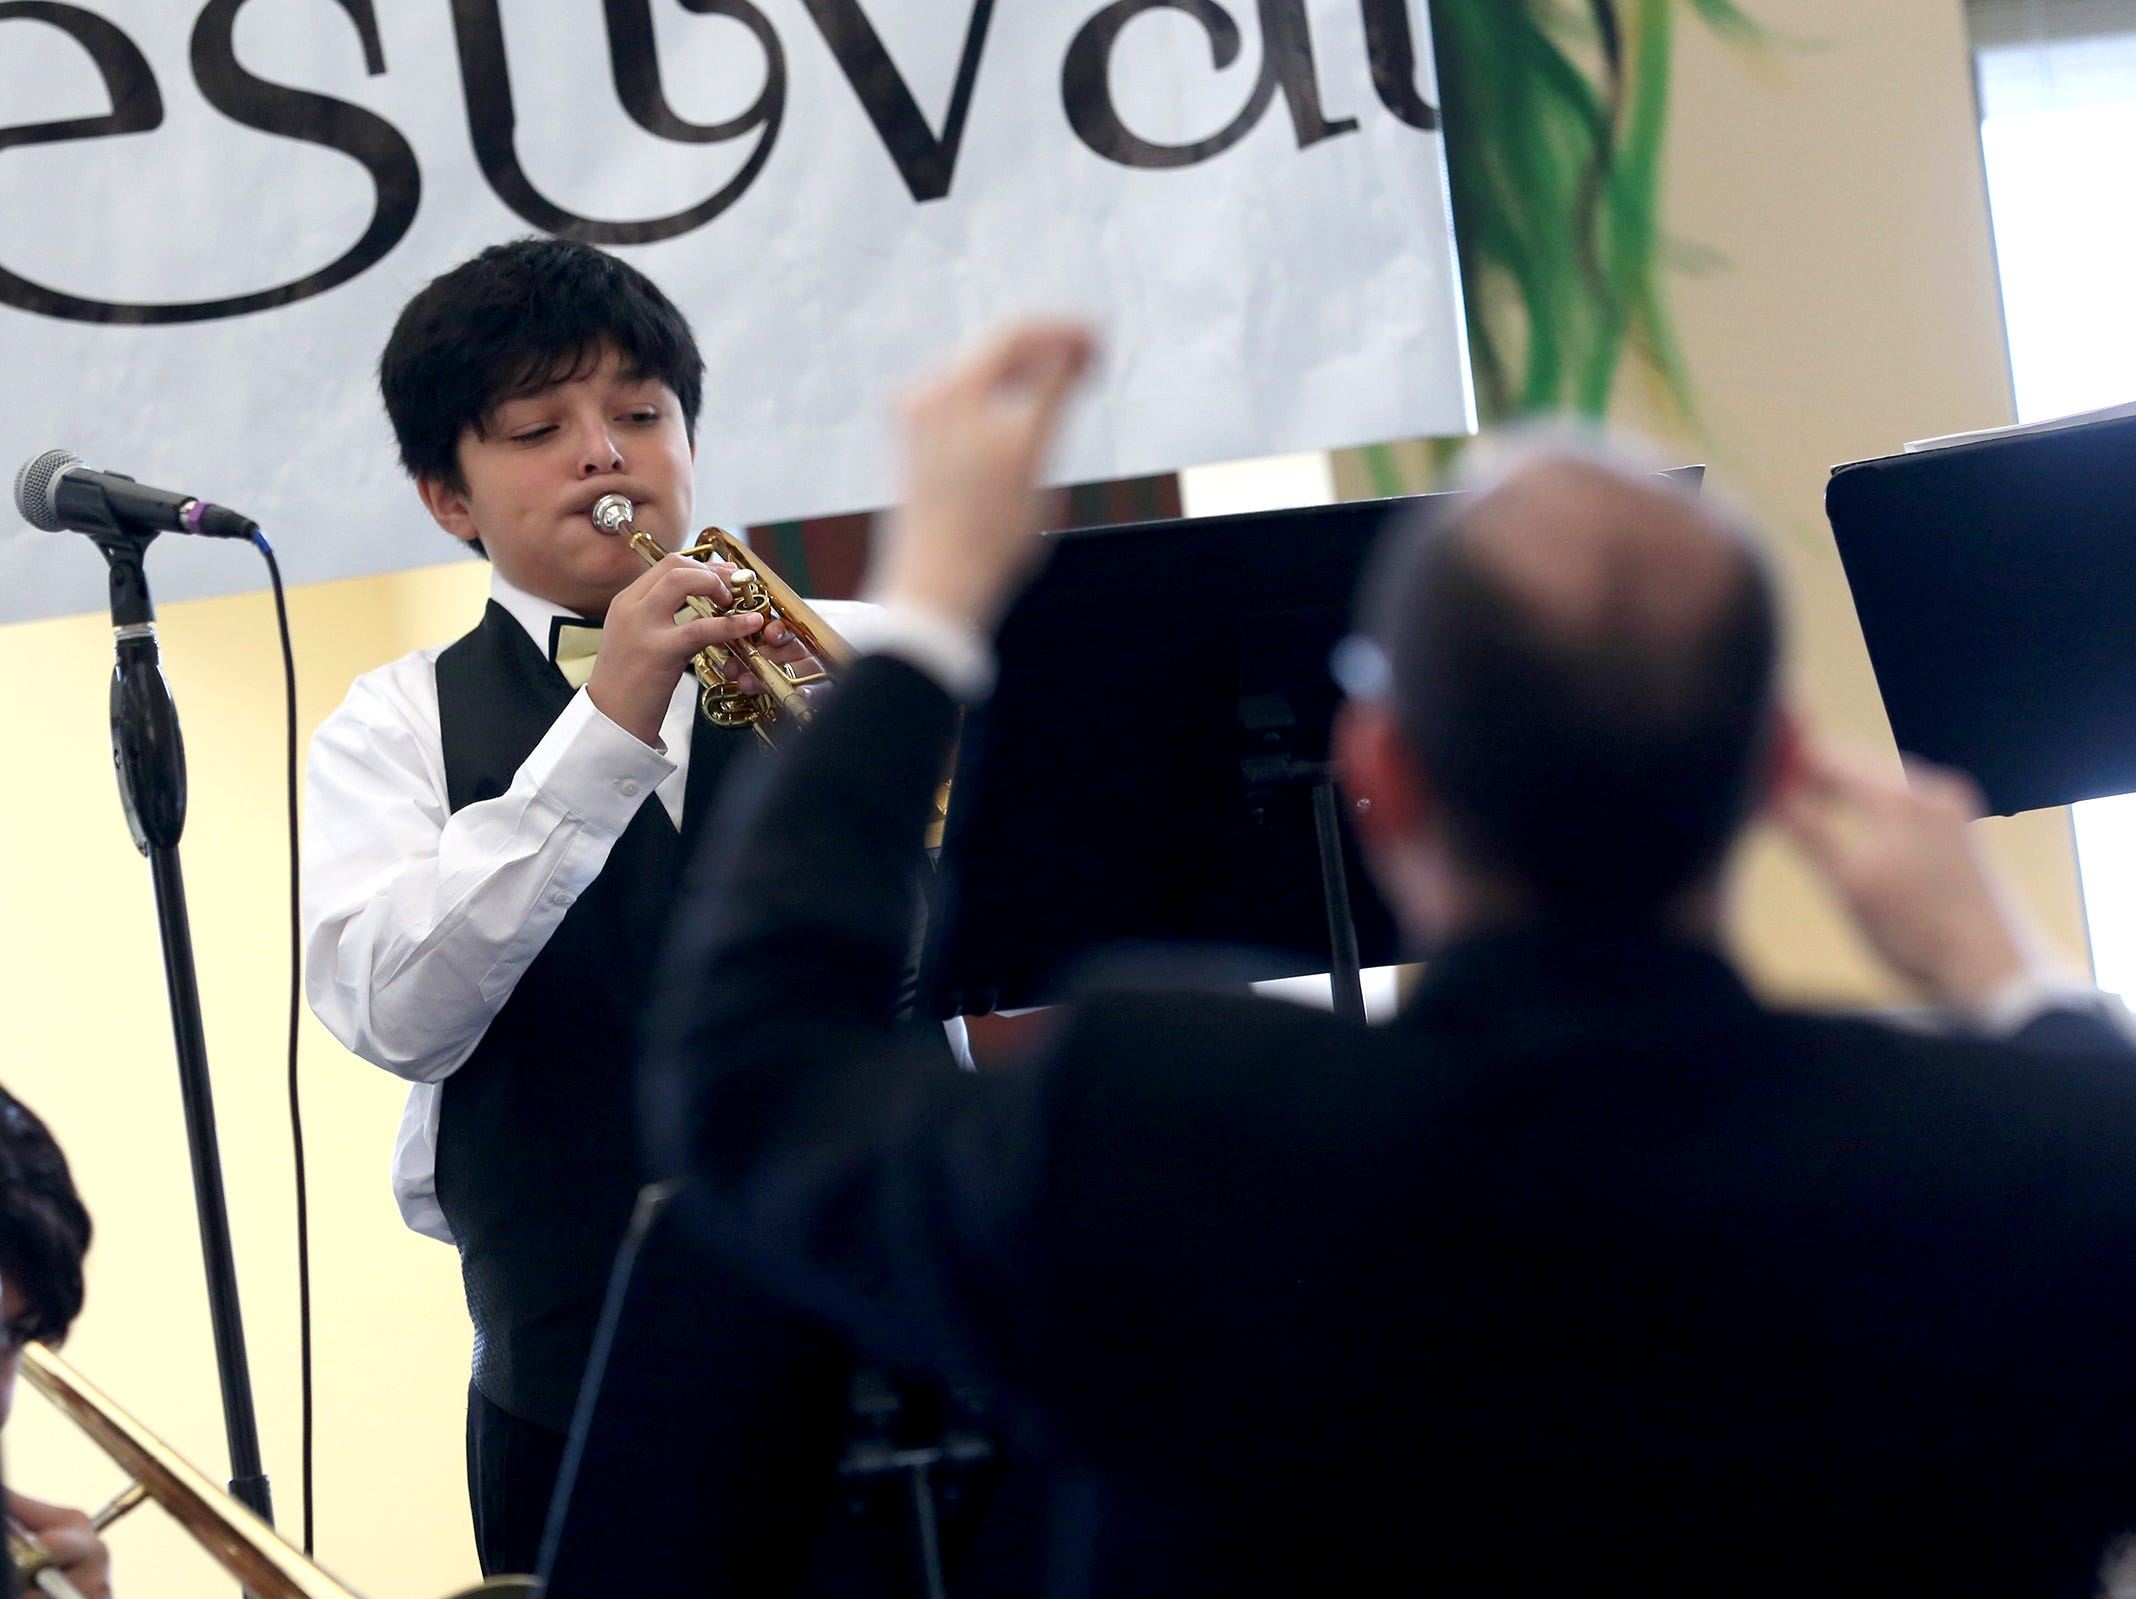 Waldo middle school seventh grade student Edgar Cardova performs at the annual West Salem Jazz Festival at West Salem High School on Saturday, Feb. 9, 2019.